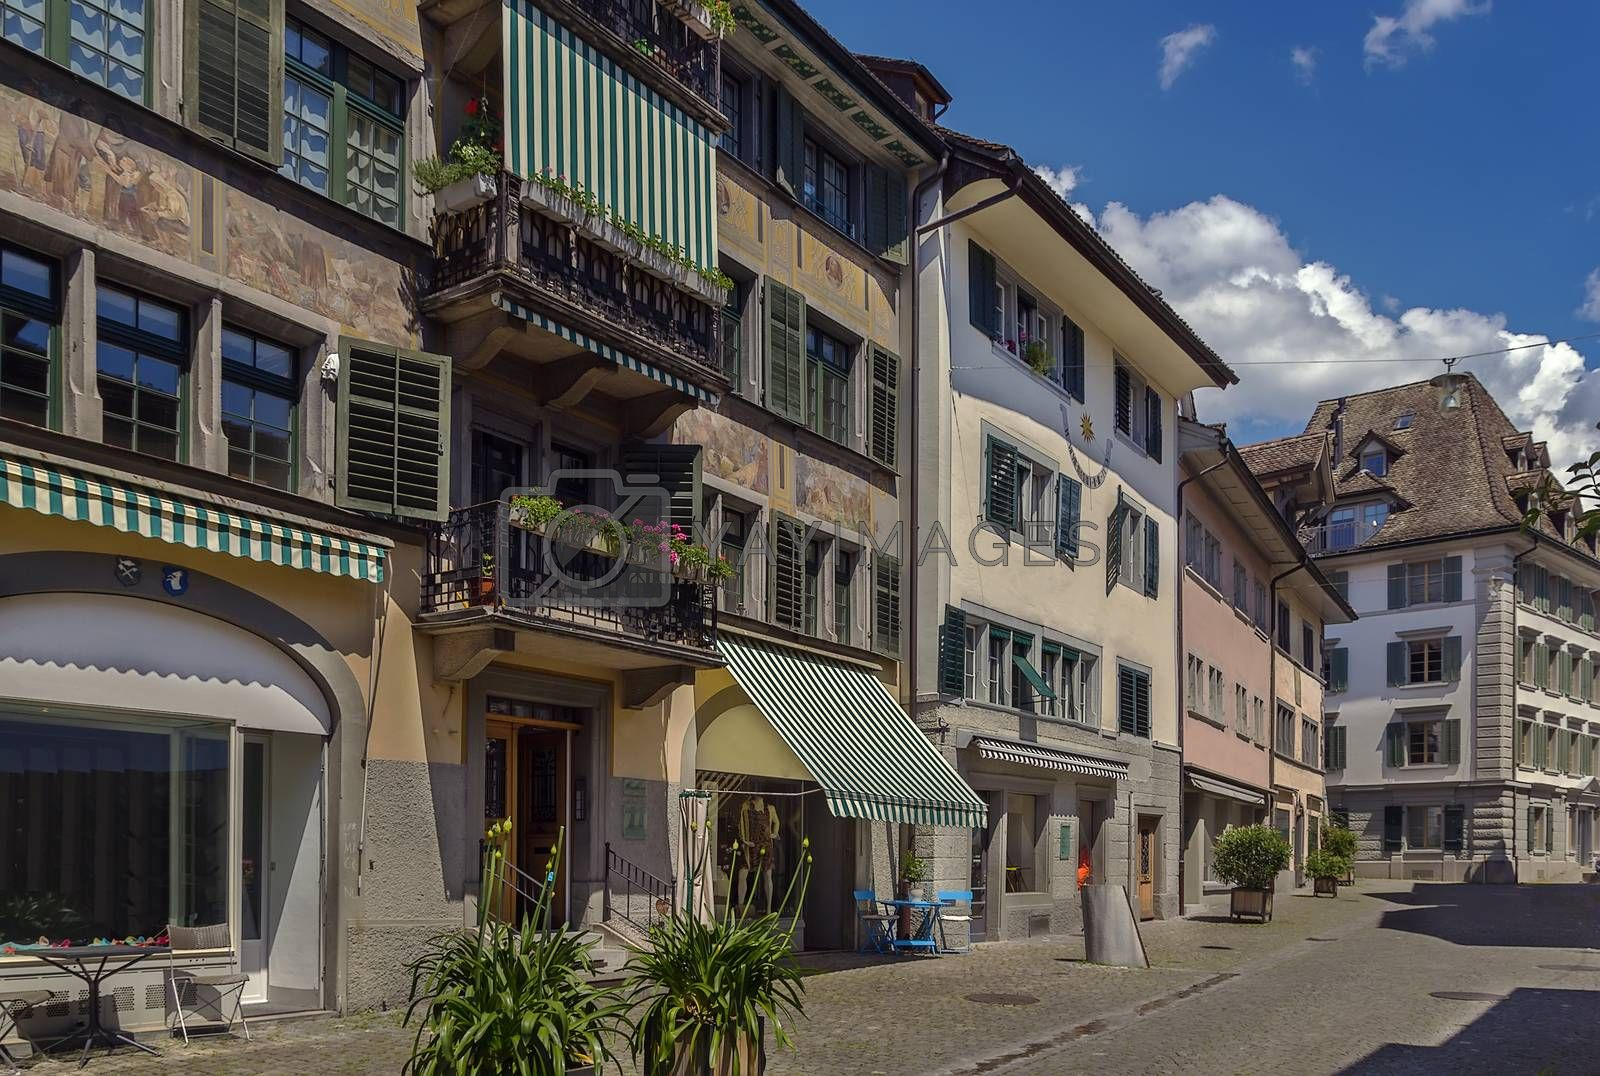 street in Rapperswil, Switzerland by borisb17